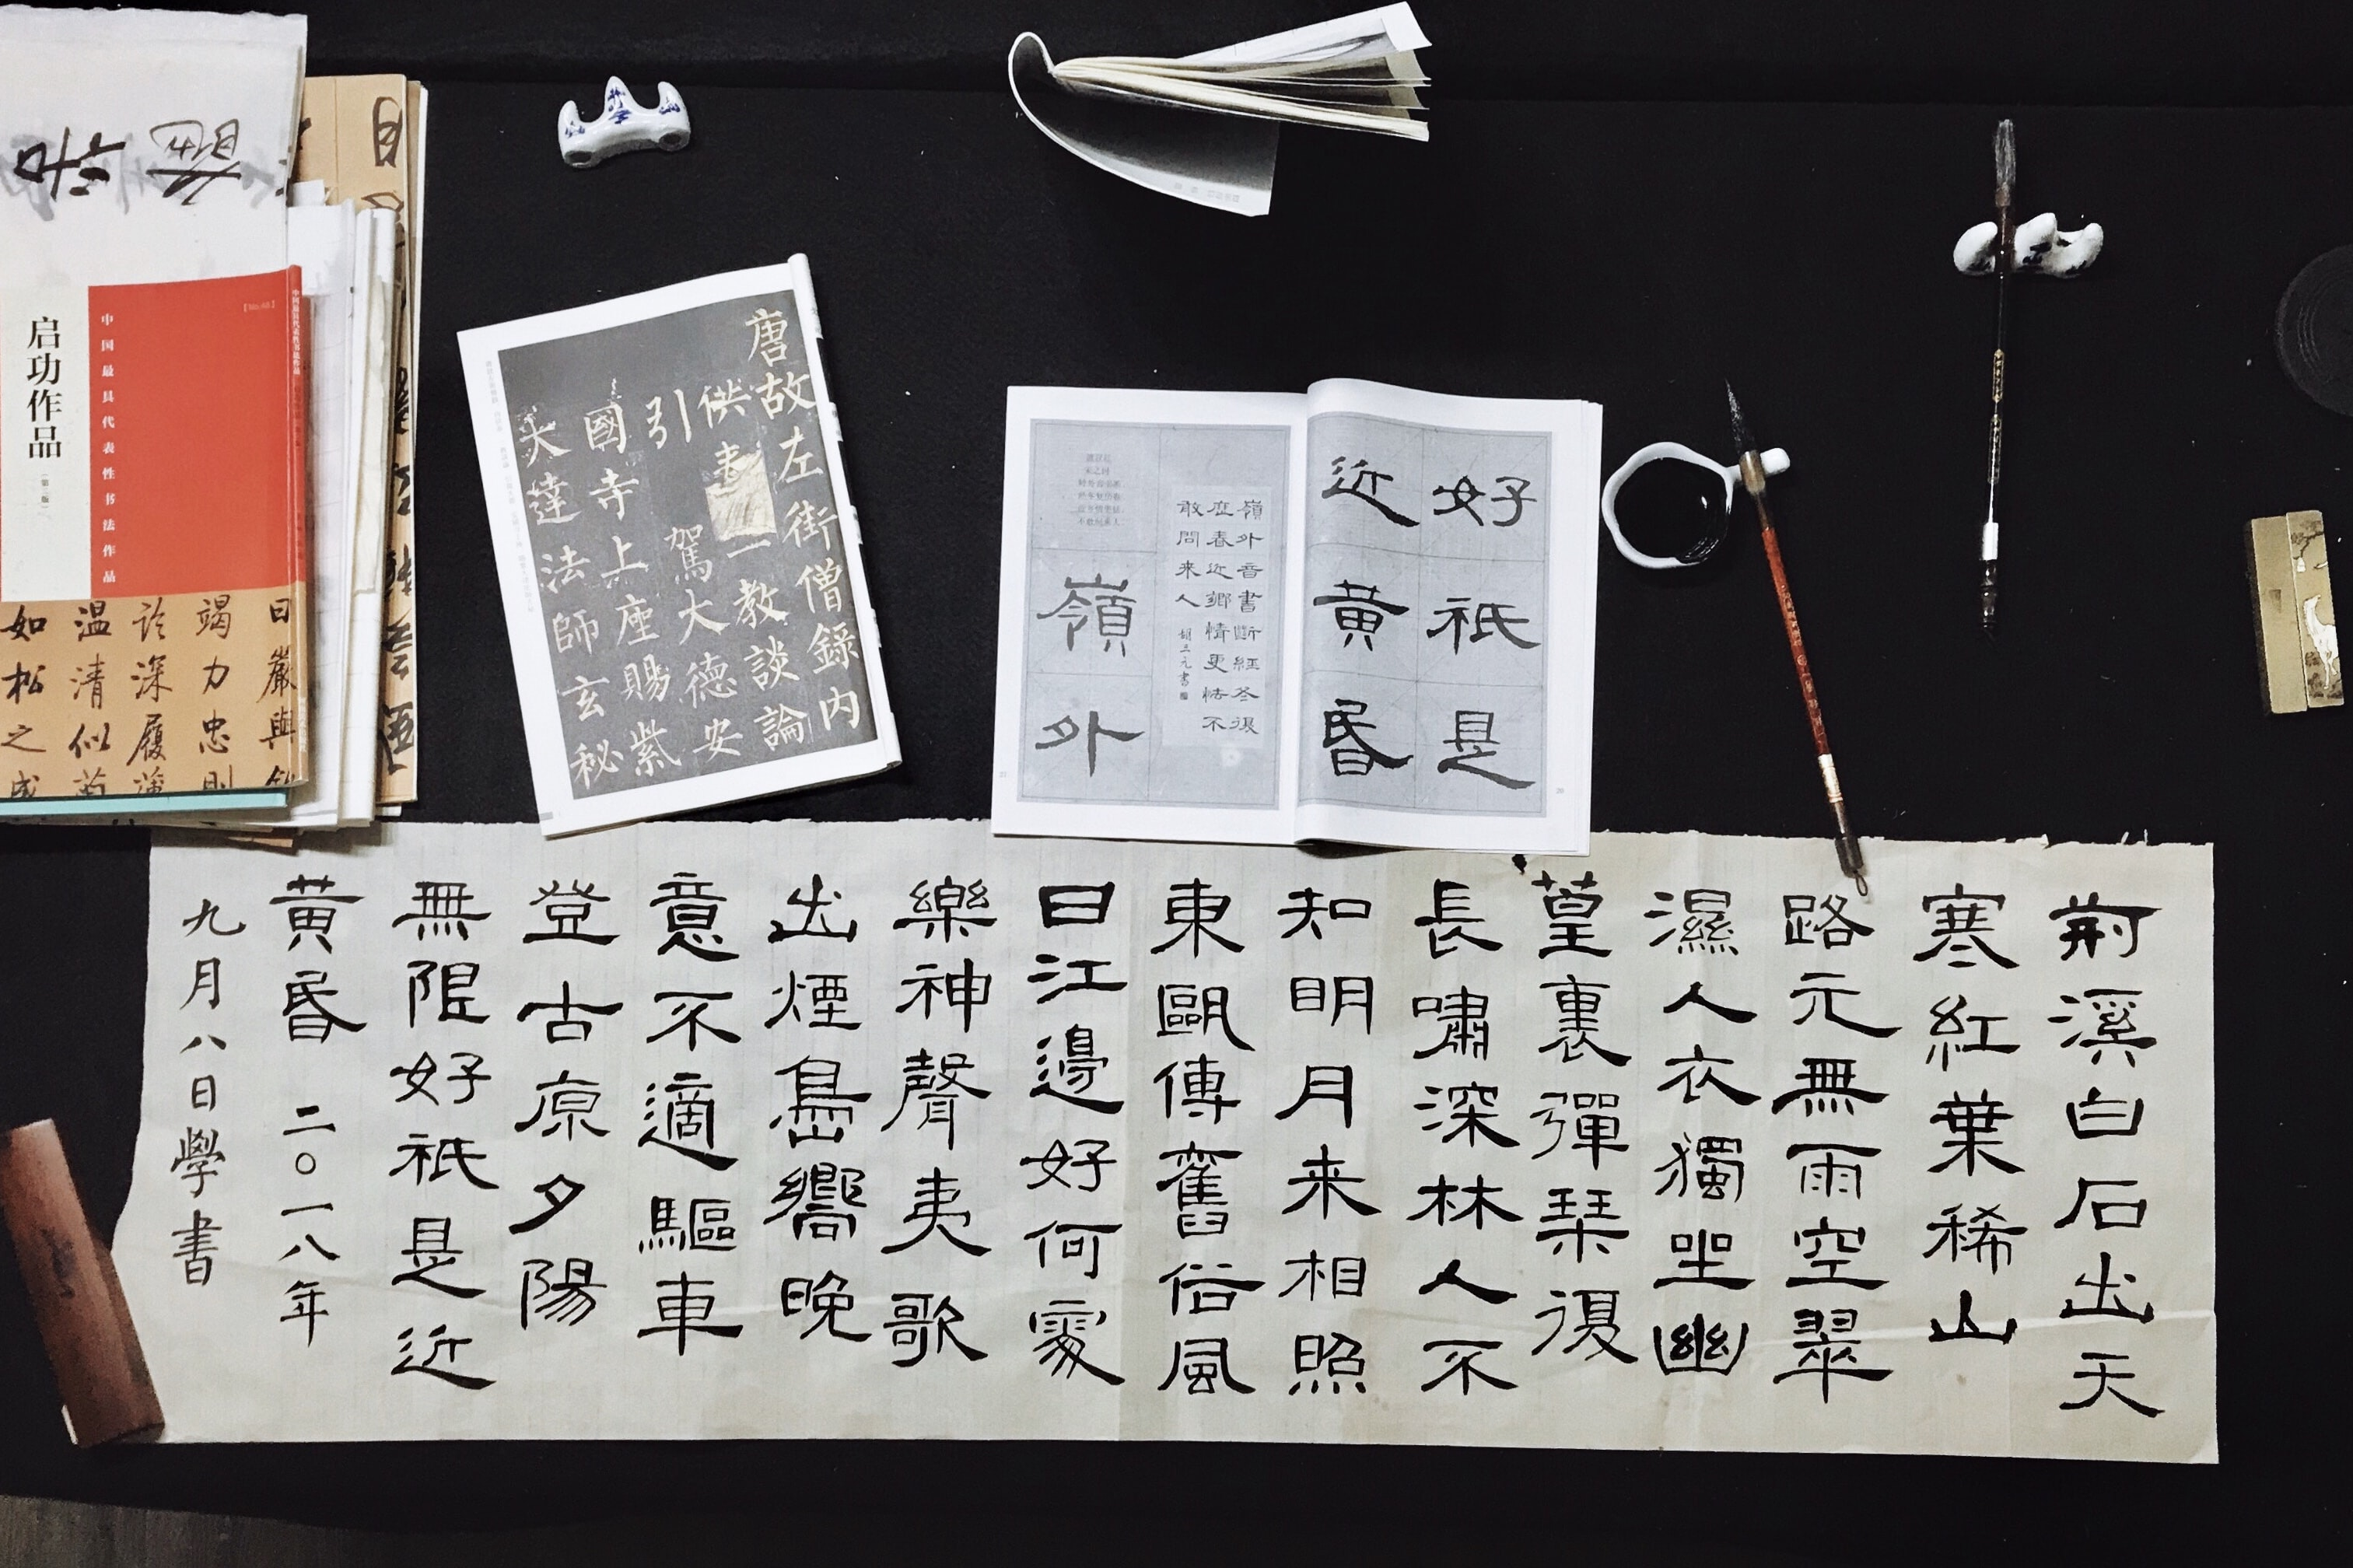 black and white kanji calligraphy poster on top of black table